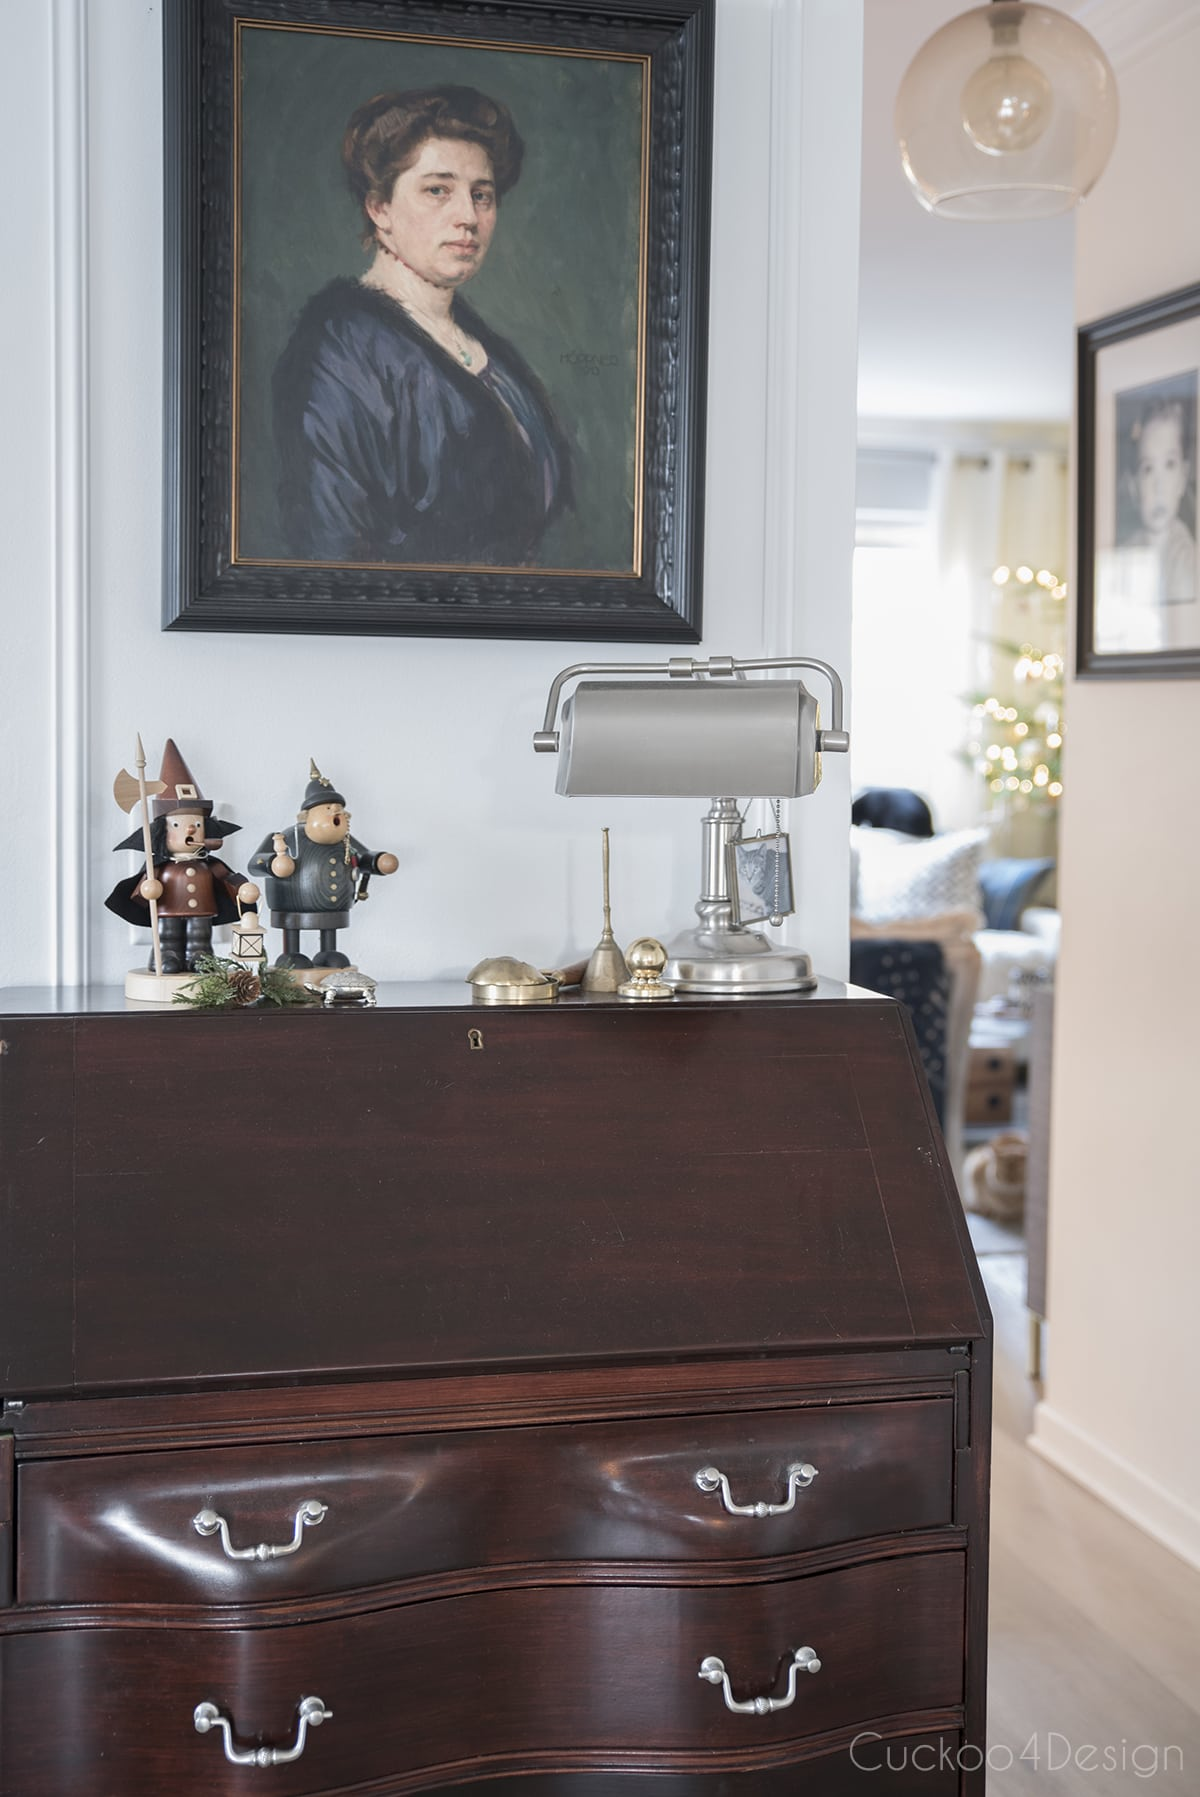 Queen Anne desk with ancestor painting